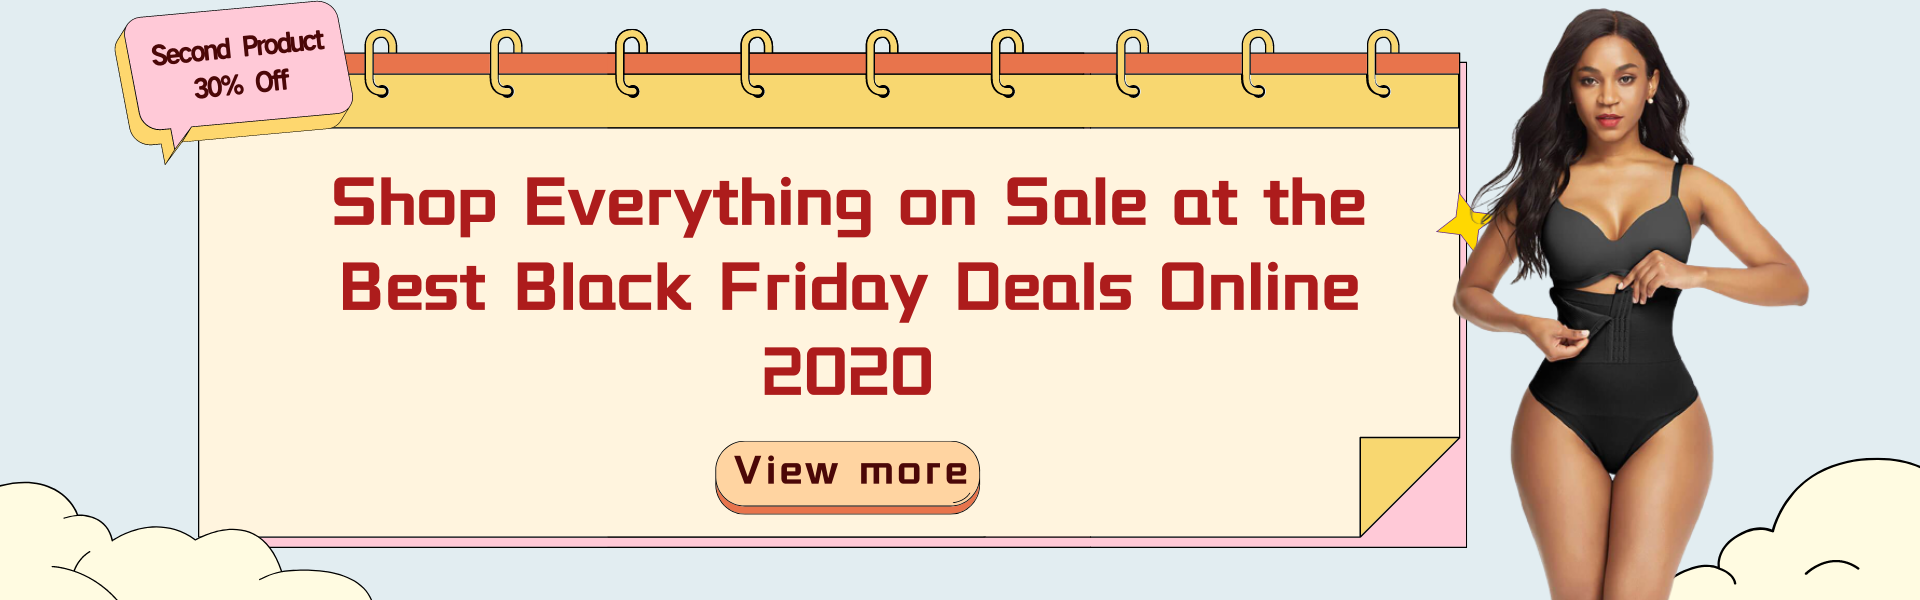 Shop Everything on Sale at the Best Black Friday Deals Online 2020